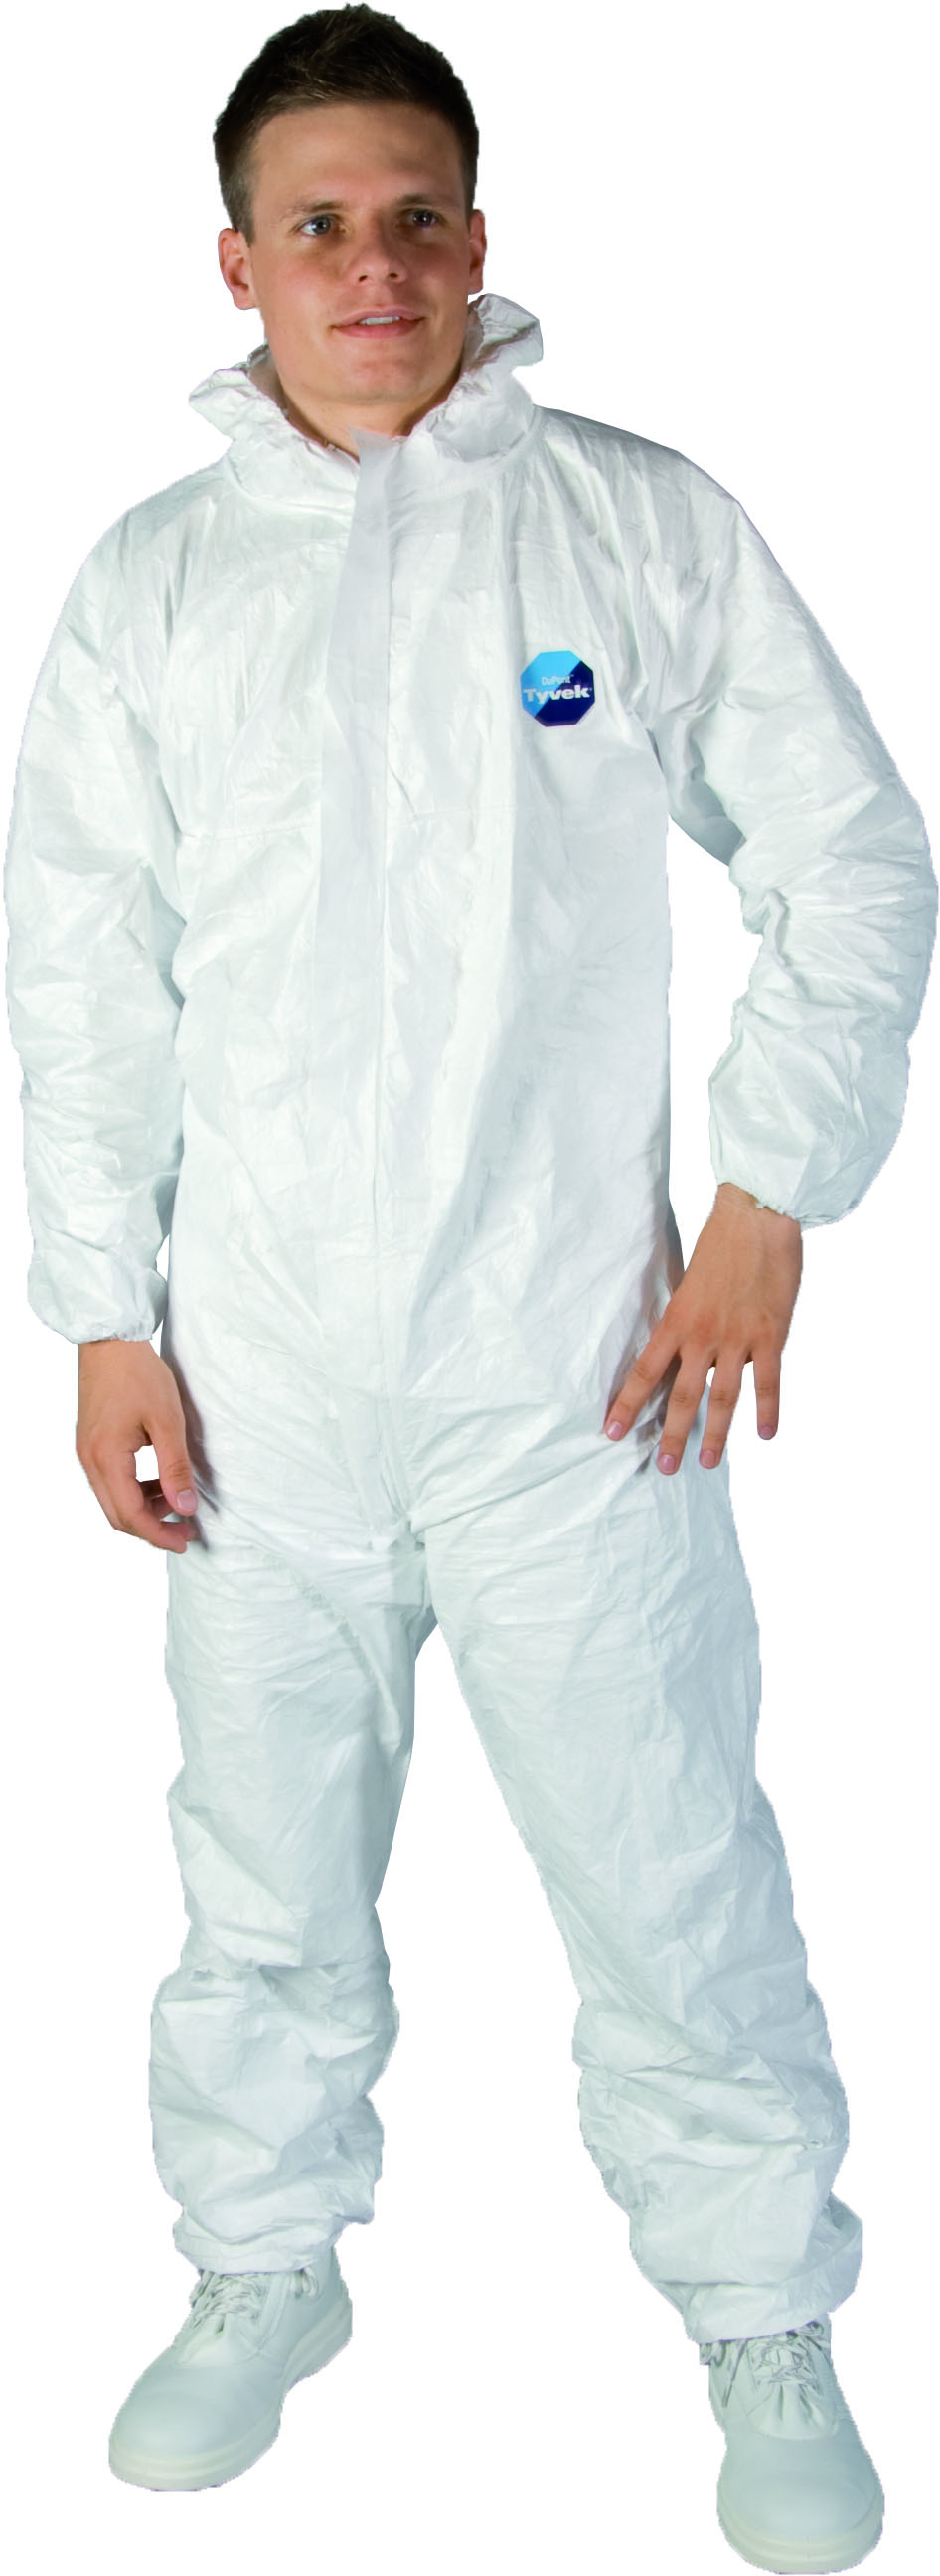 Overal TYVEK CLASSIC XPERT L